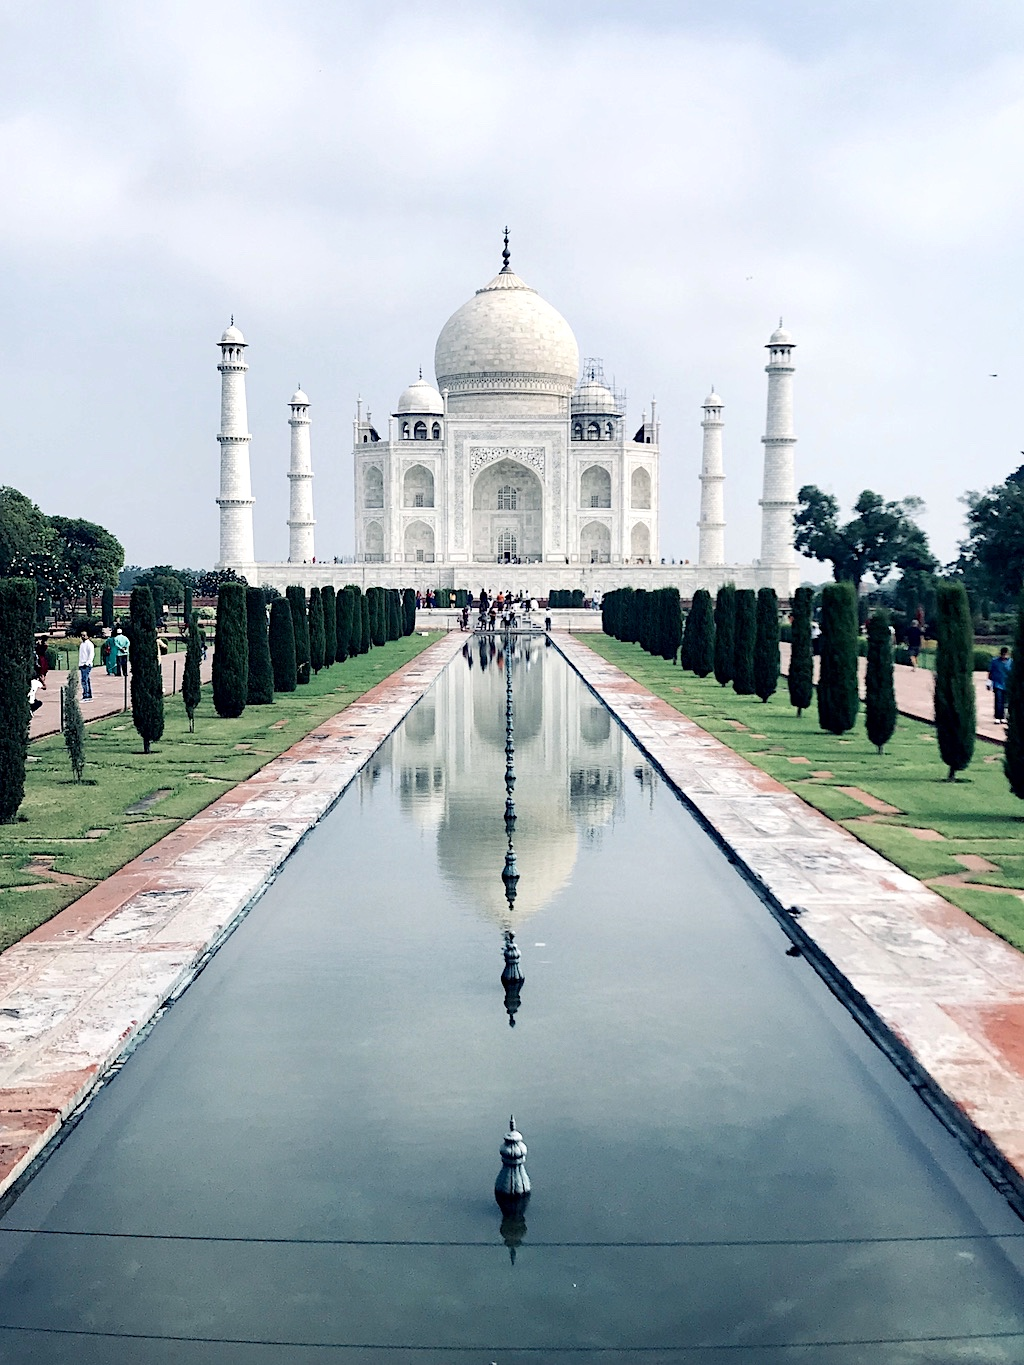 A front view of the Taj Mahal